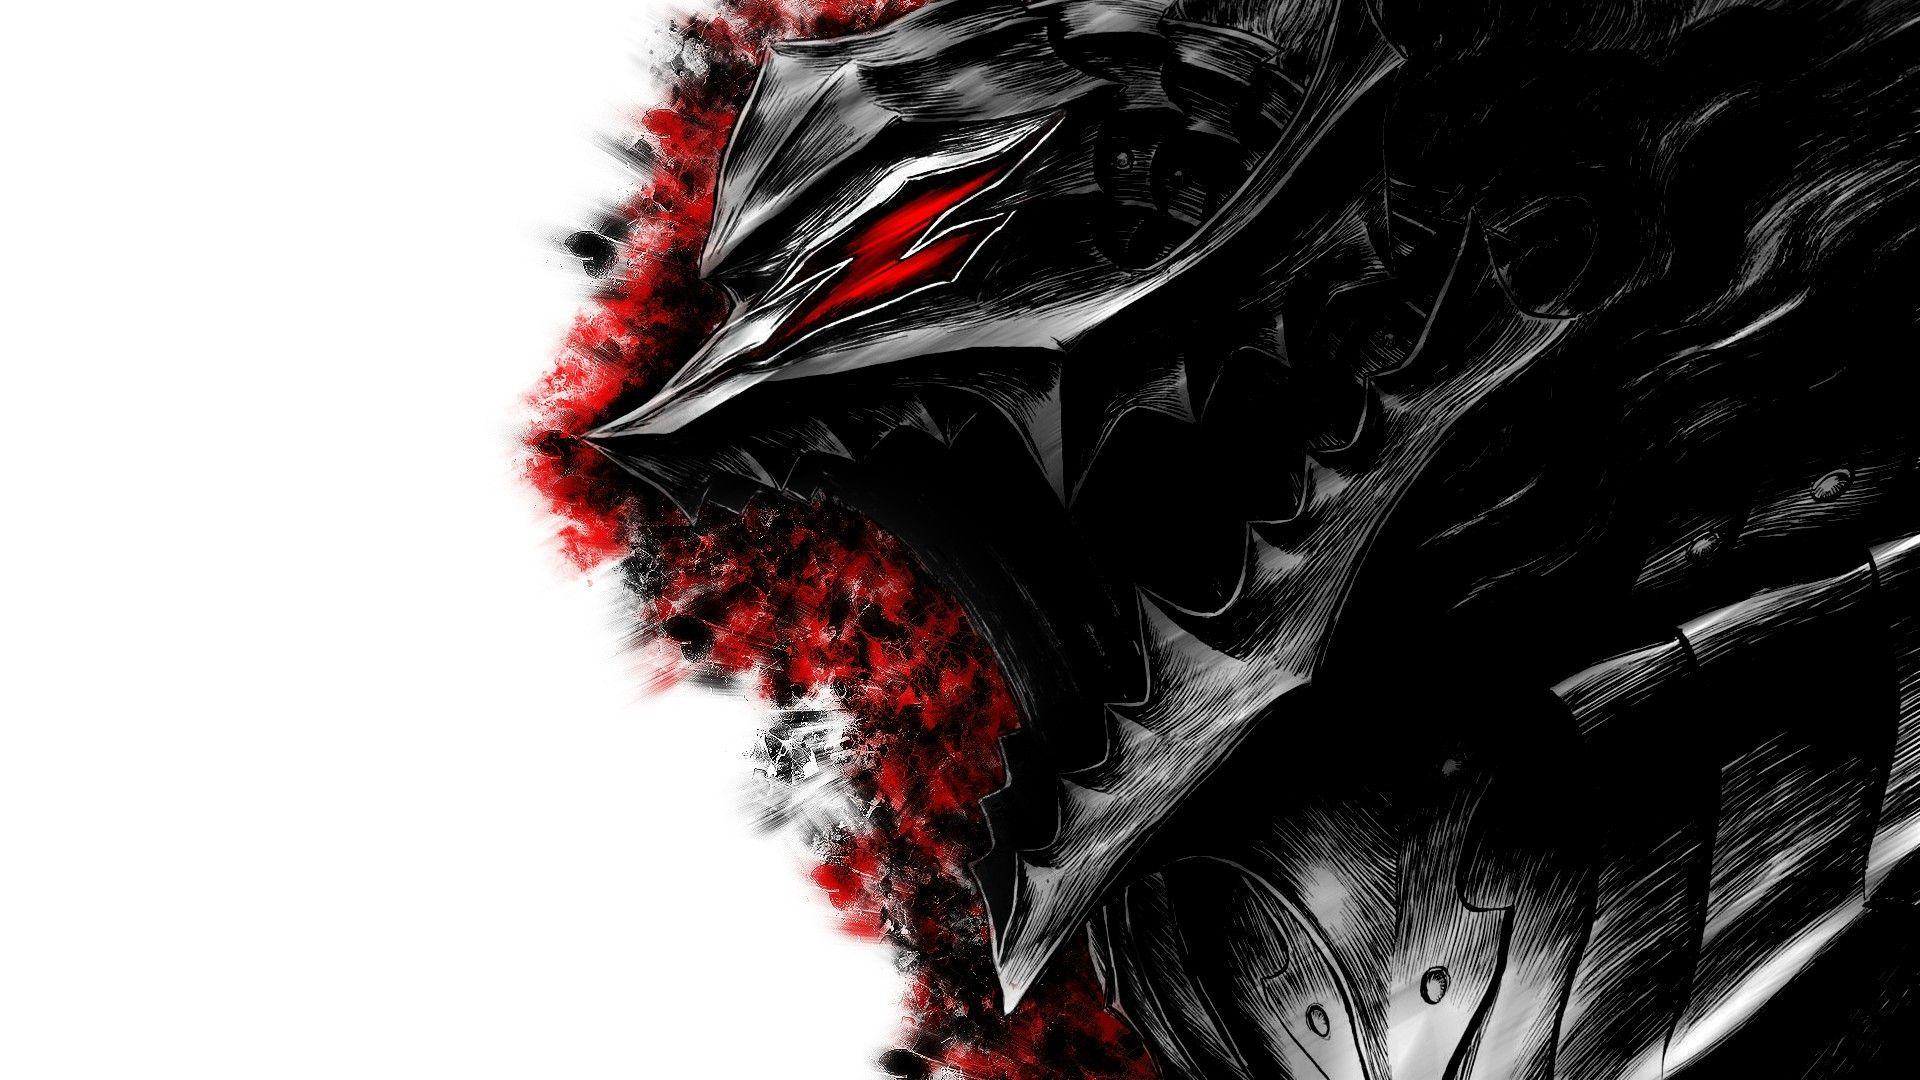 View Berserk Wallpaper Hd 1920X1080 JPG